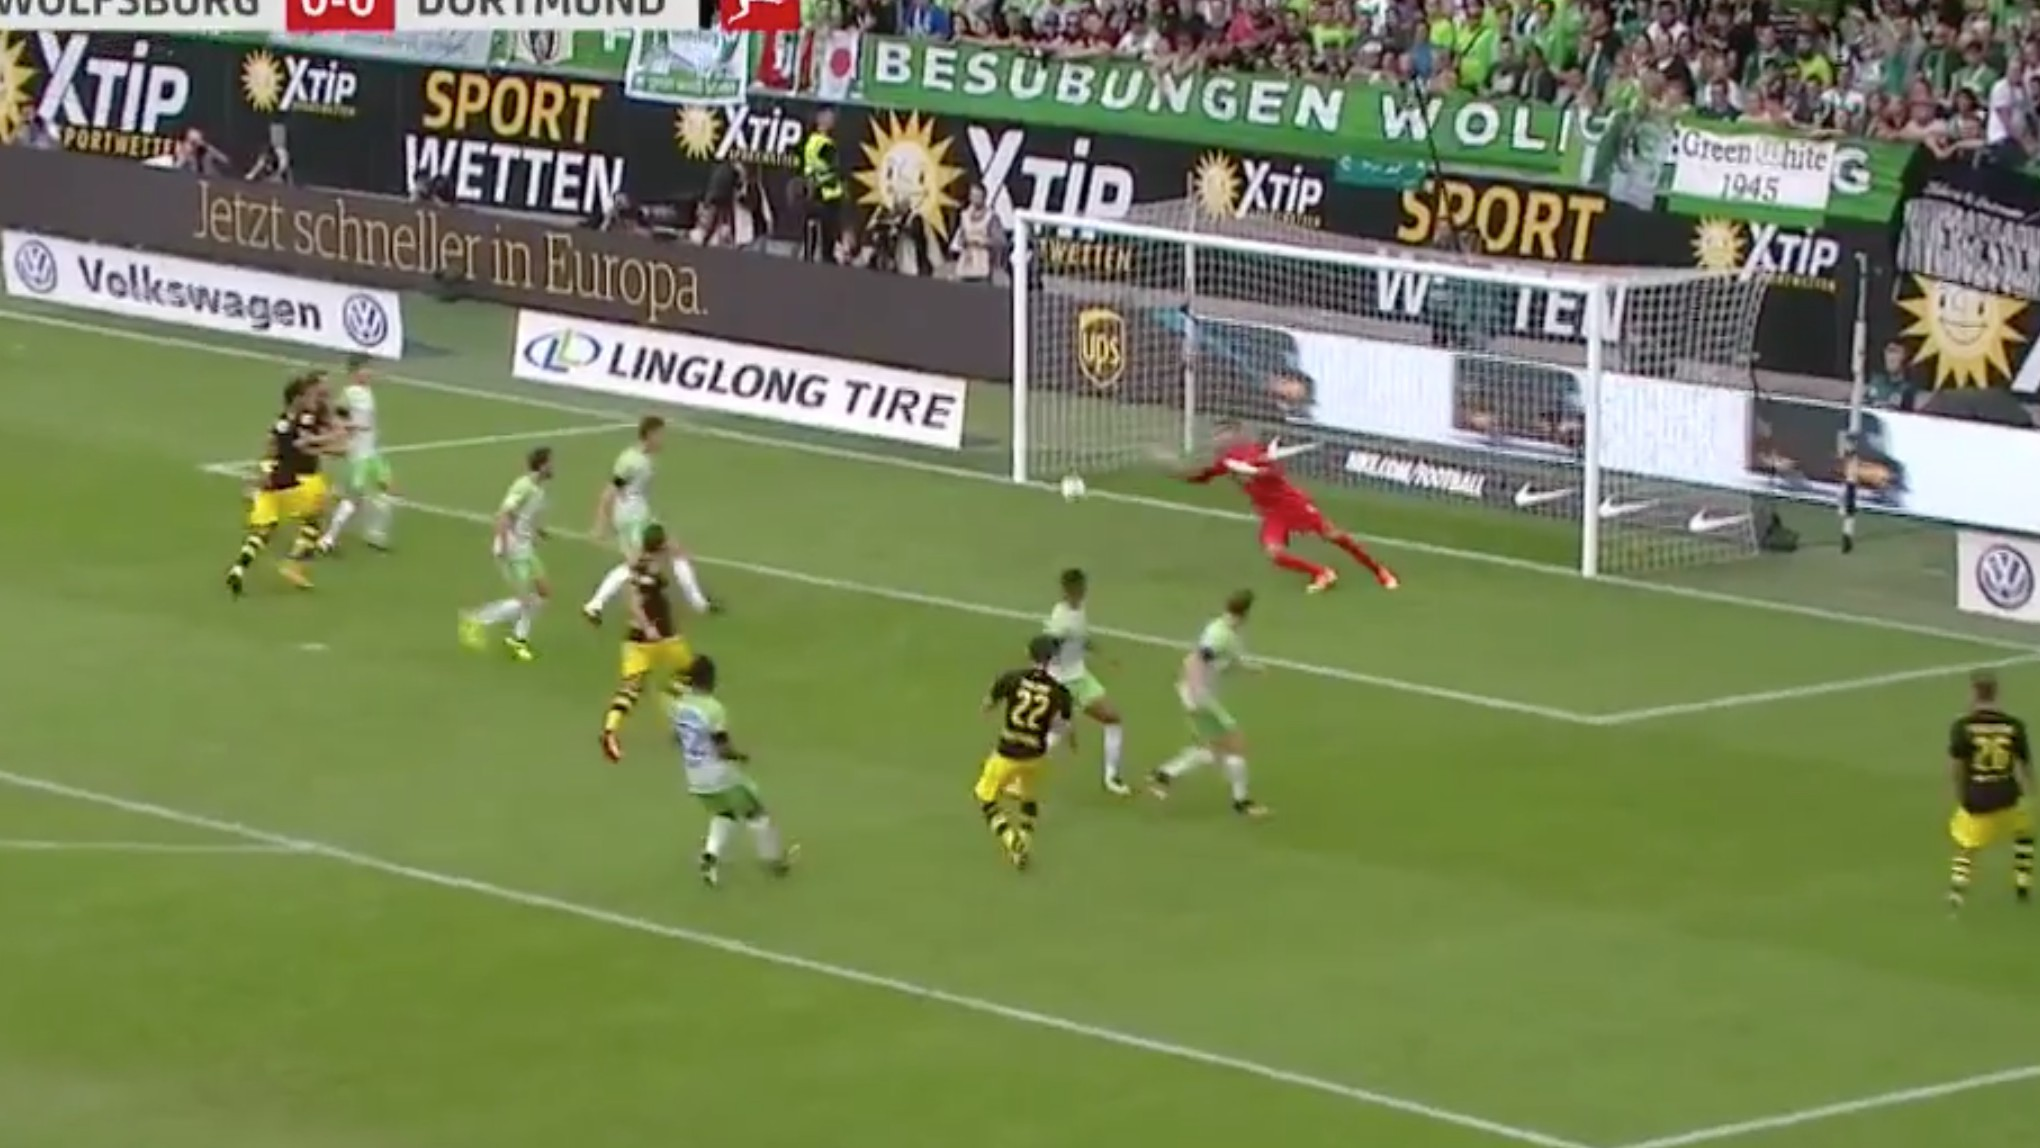 WATCH: Christian Pulisic Scores Beauty in Borussia Dortmund's Bundesliga Opener